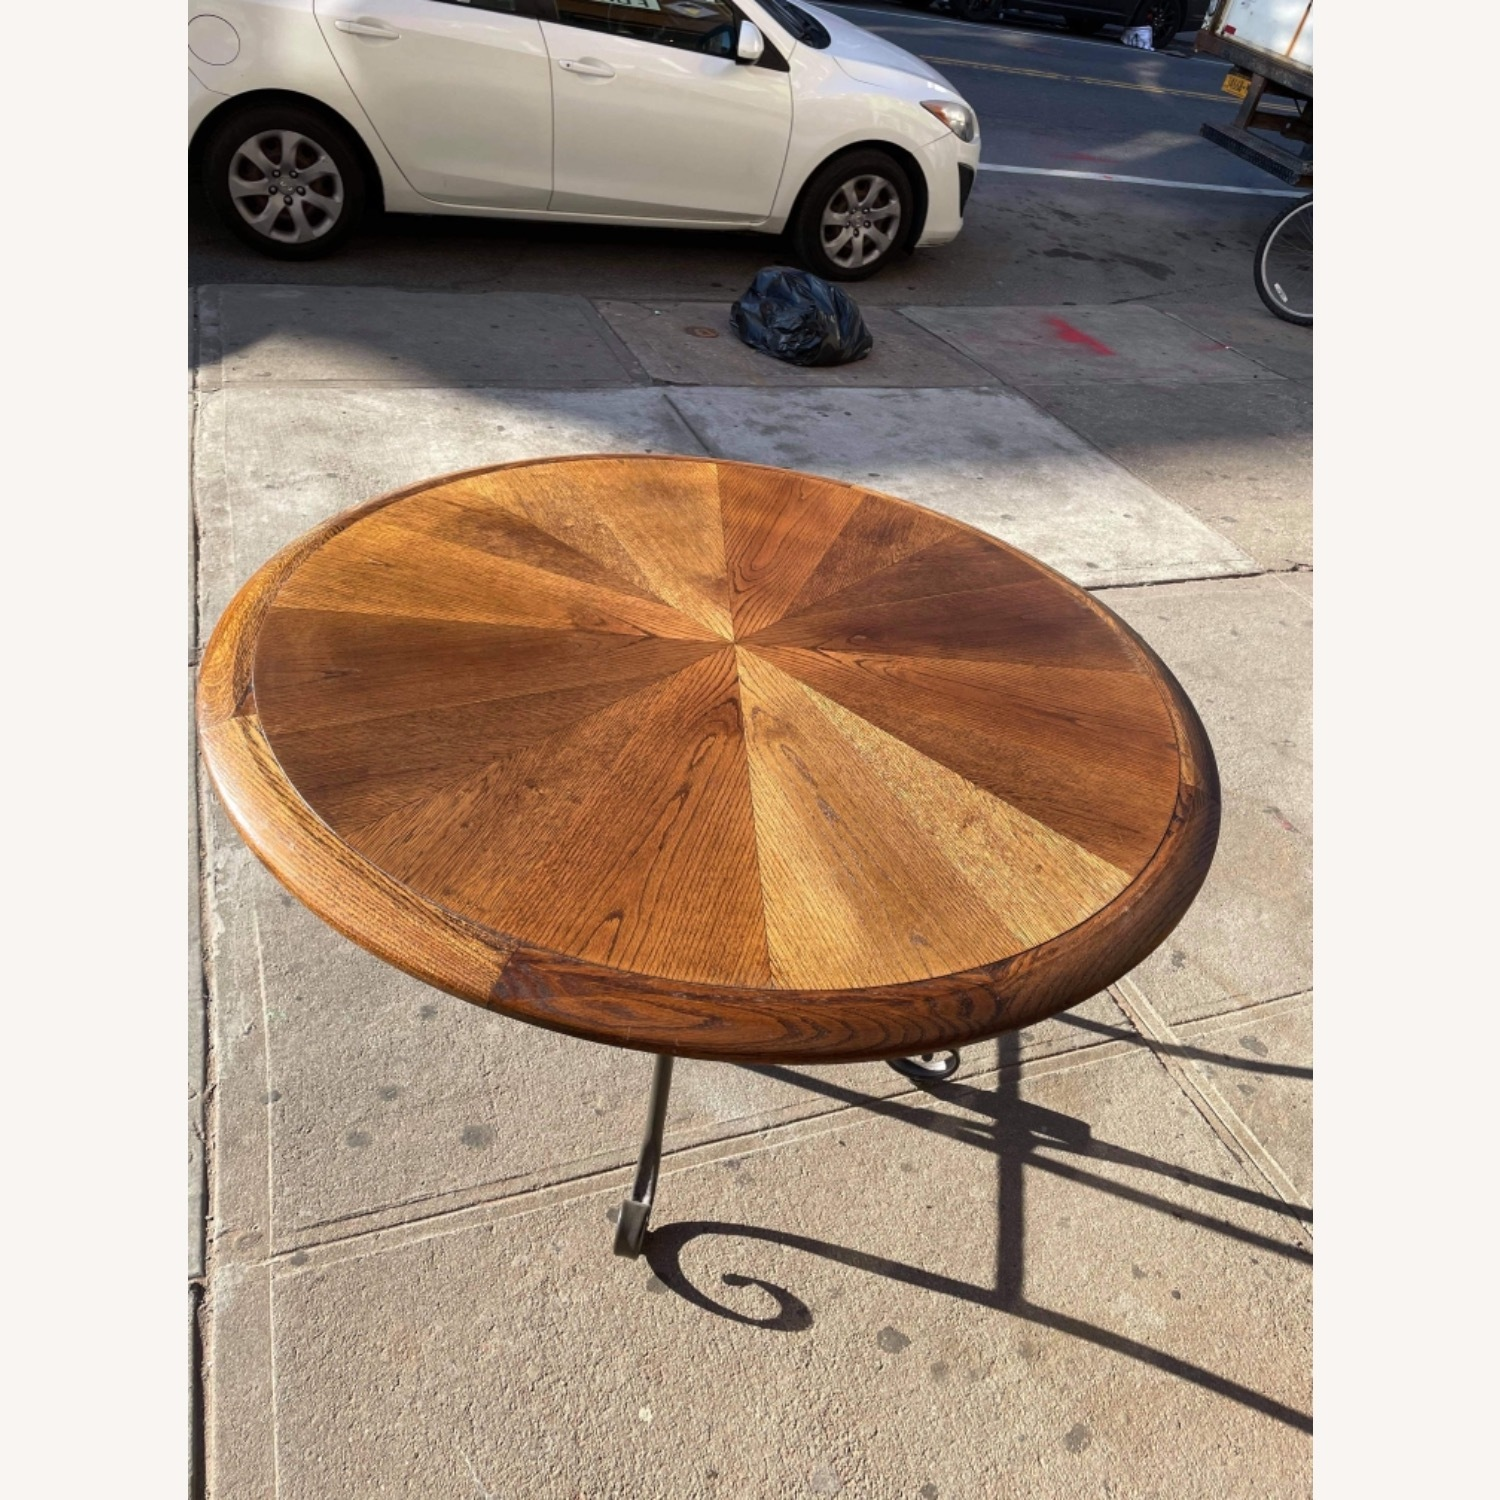 Vintage 1970s Wood & Metal Round Table - image-7